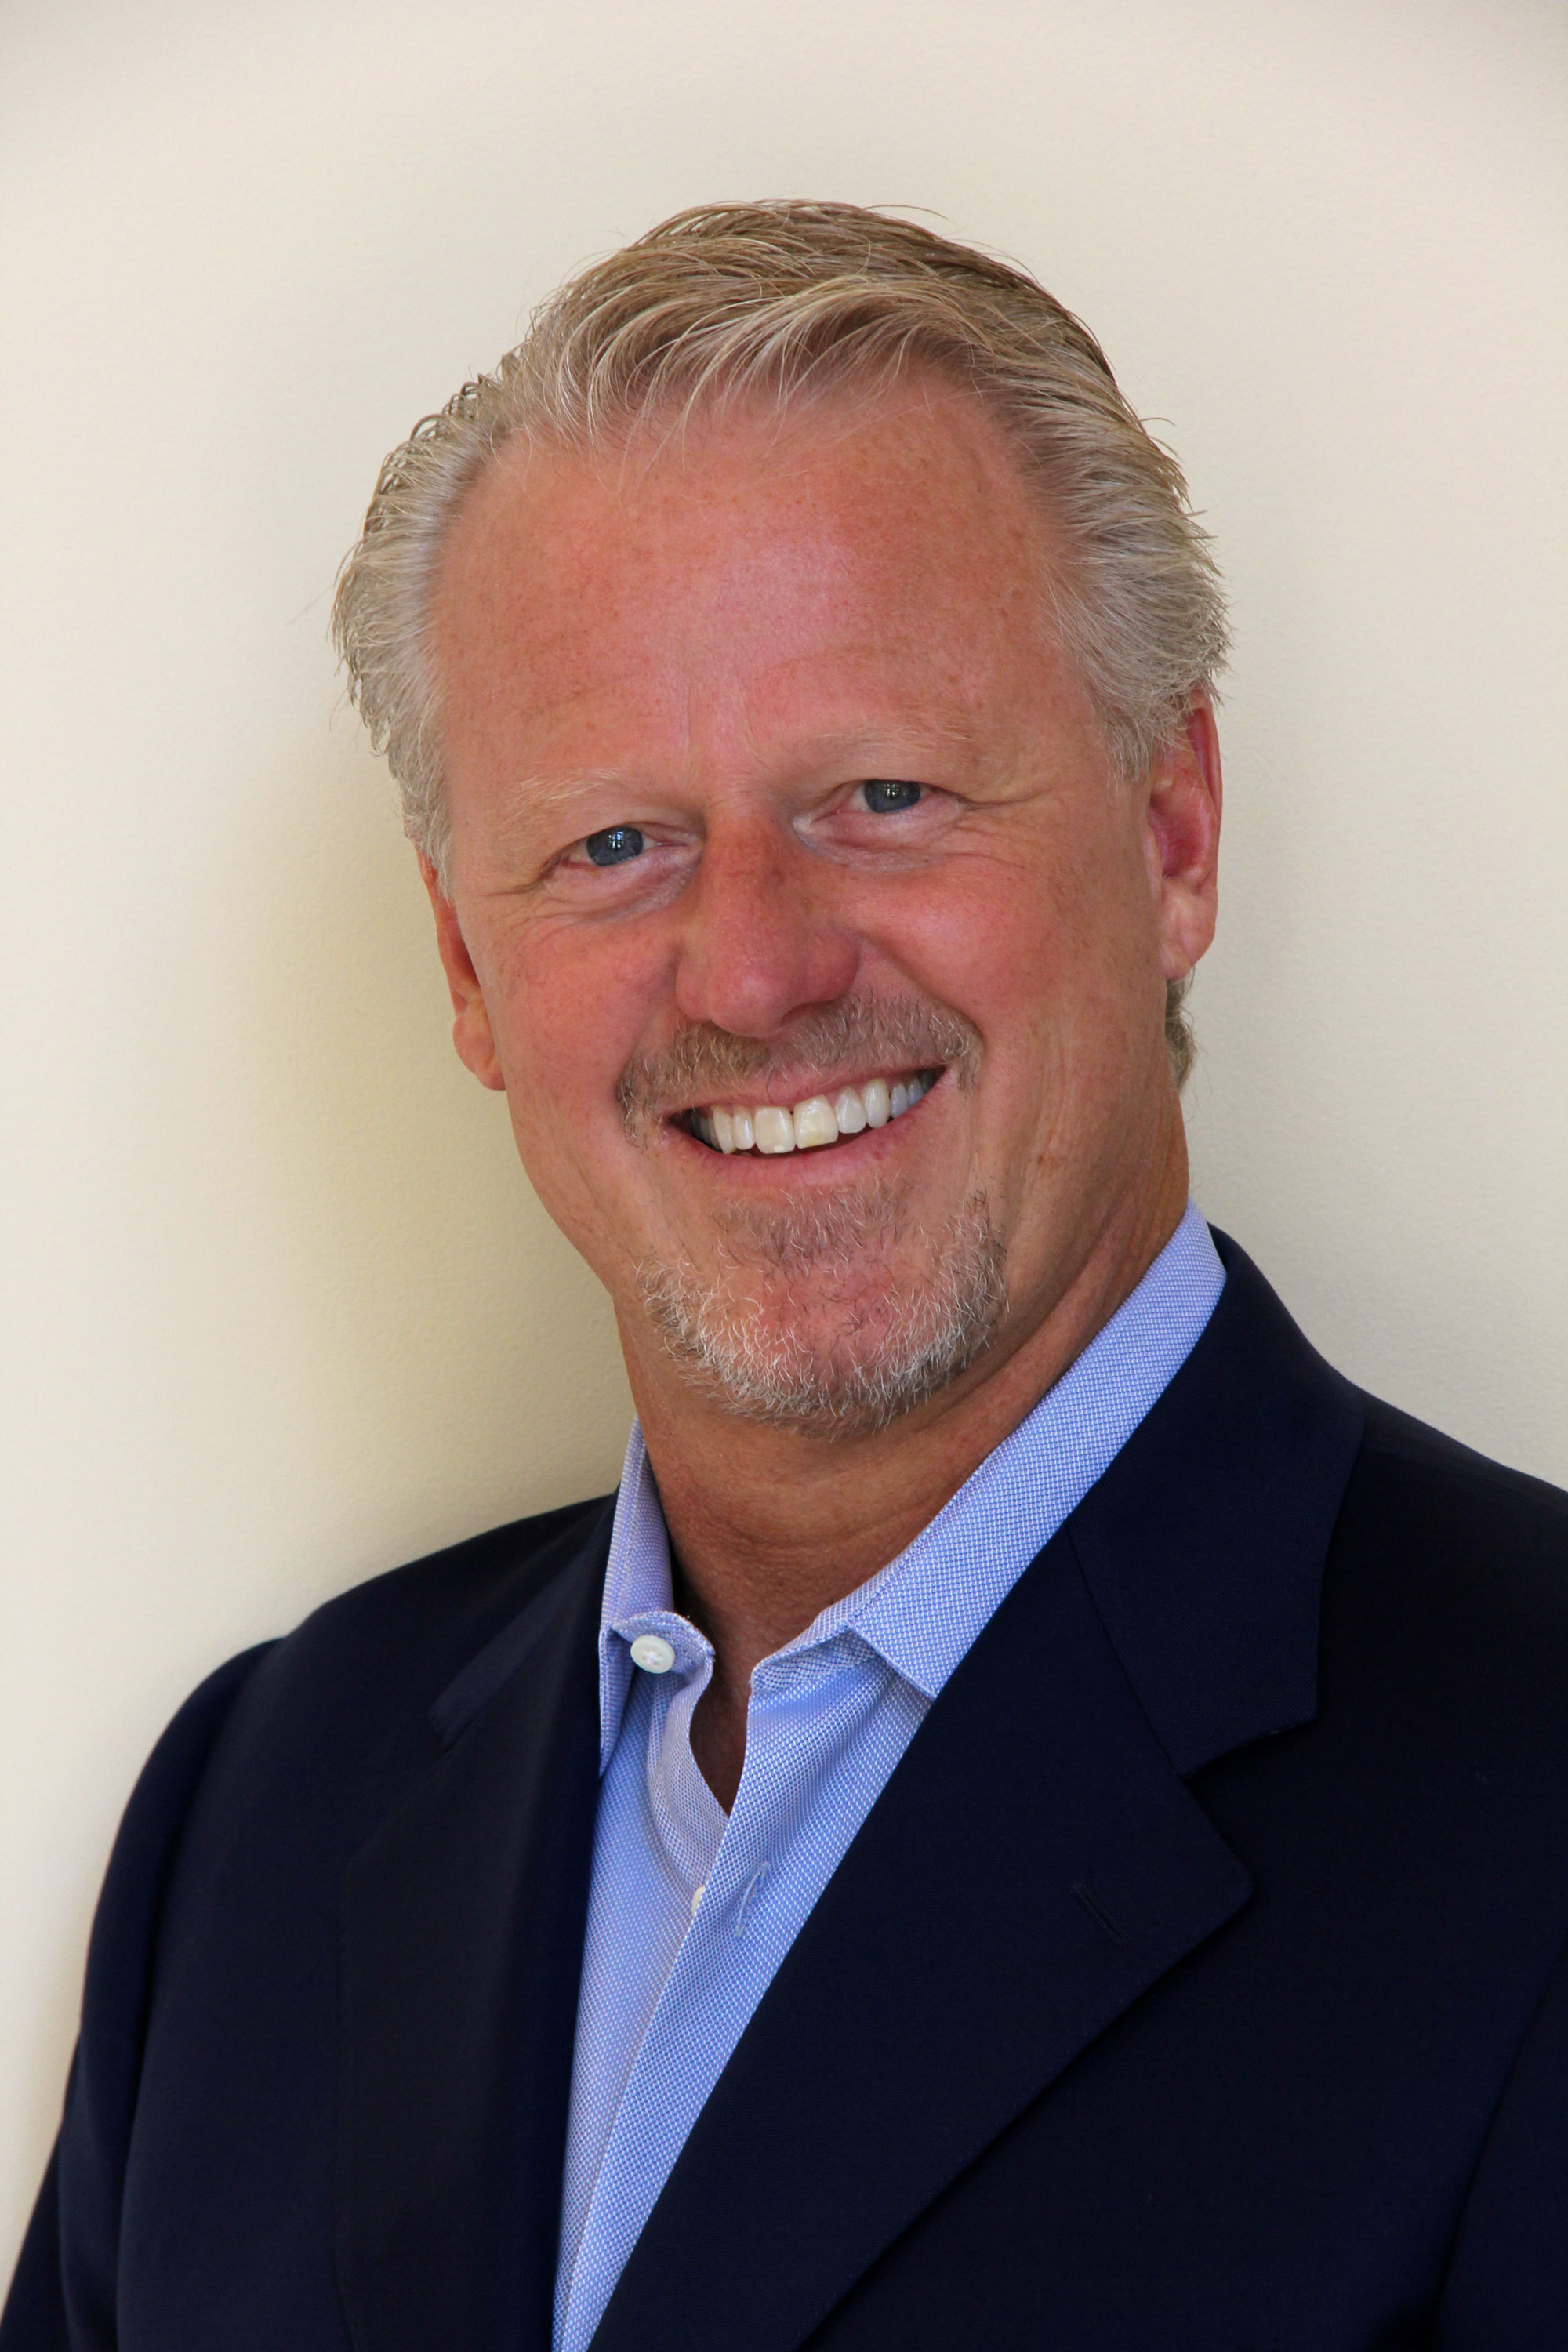 Bret Jorgensen Appointed MDVIP Executive Chairman (Photo: Business Wire)